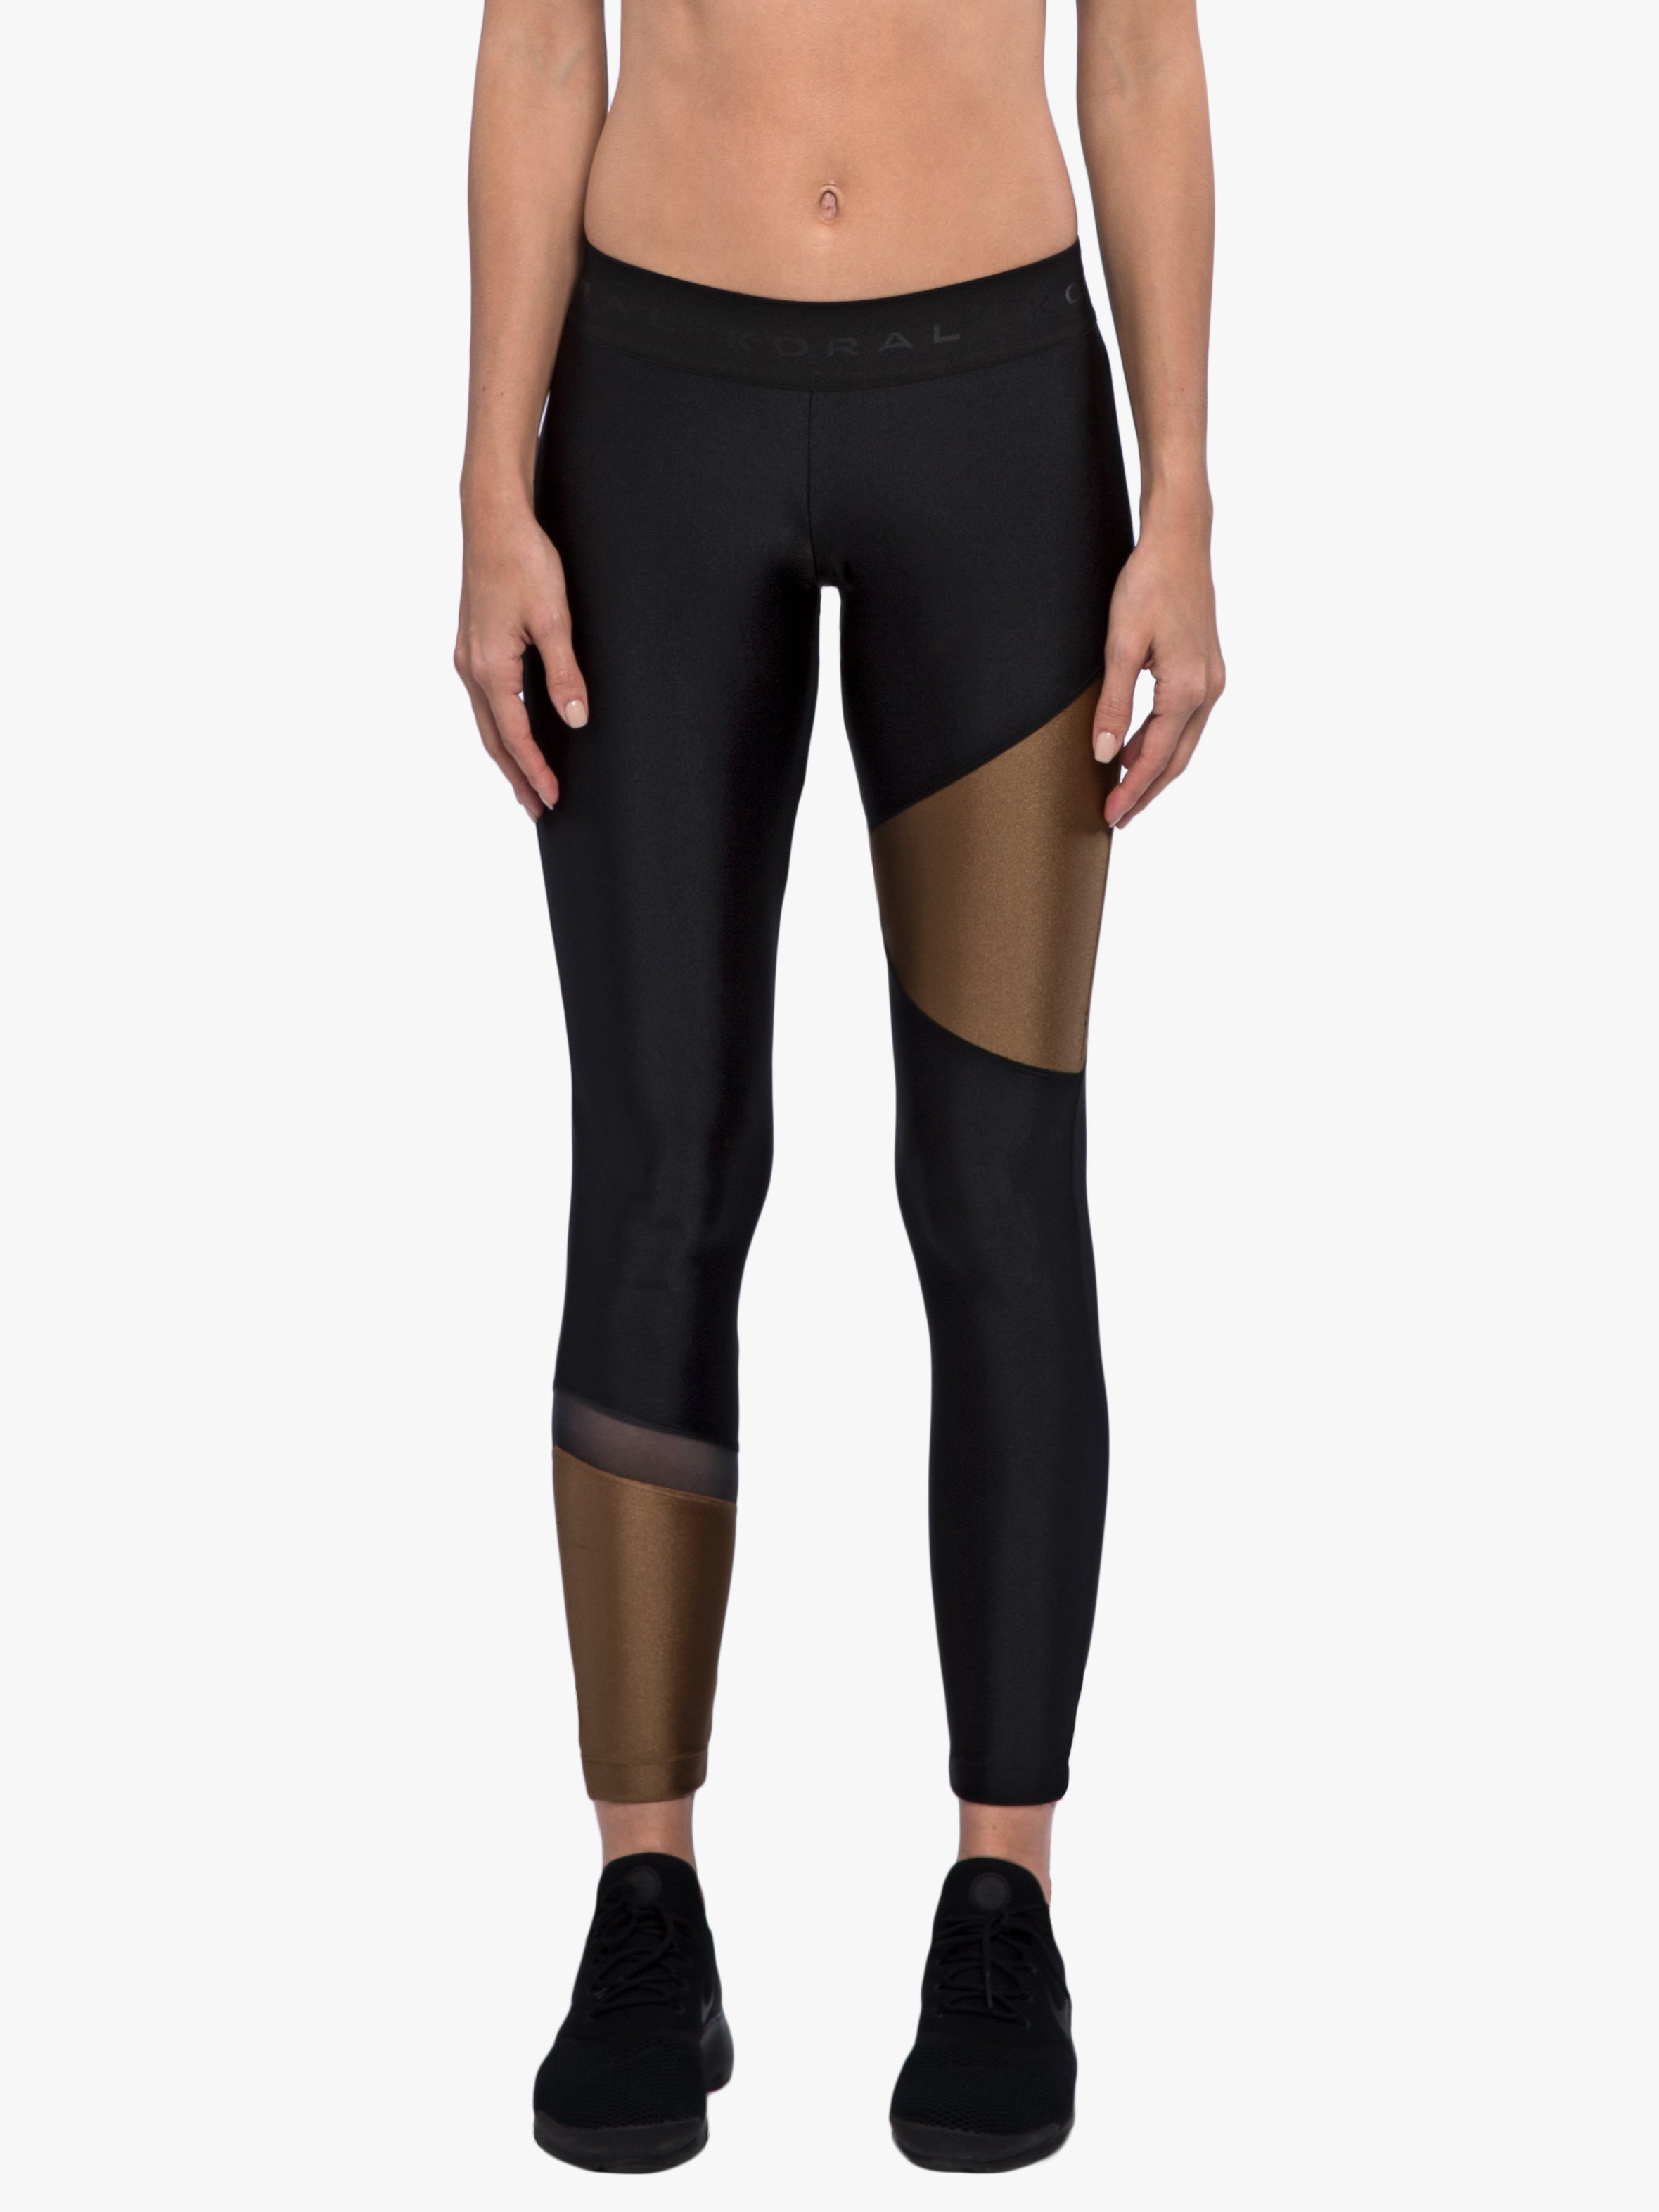 Glacier Sprint Legging - Black/Toffee